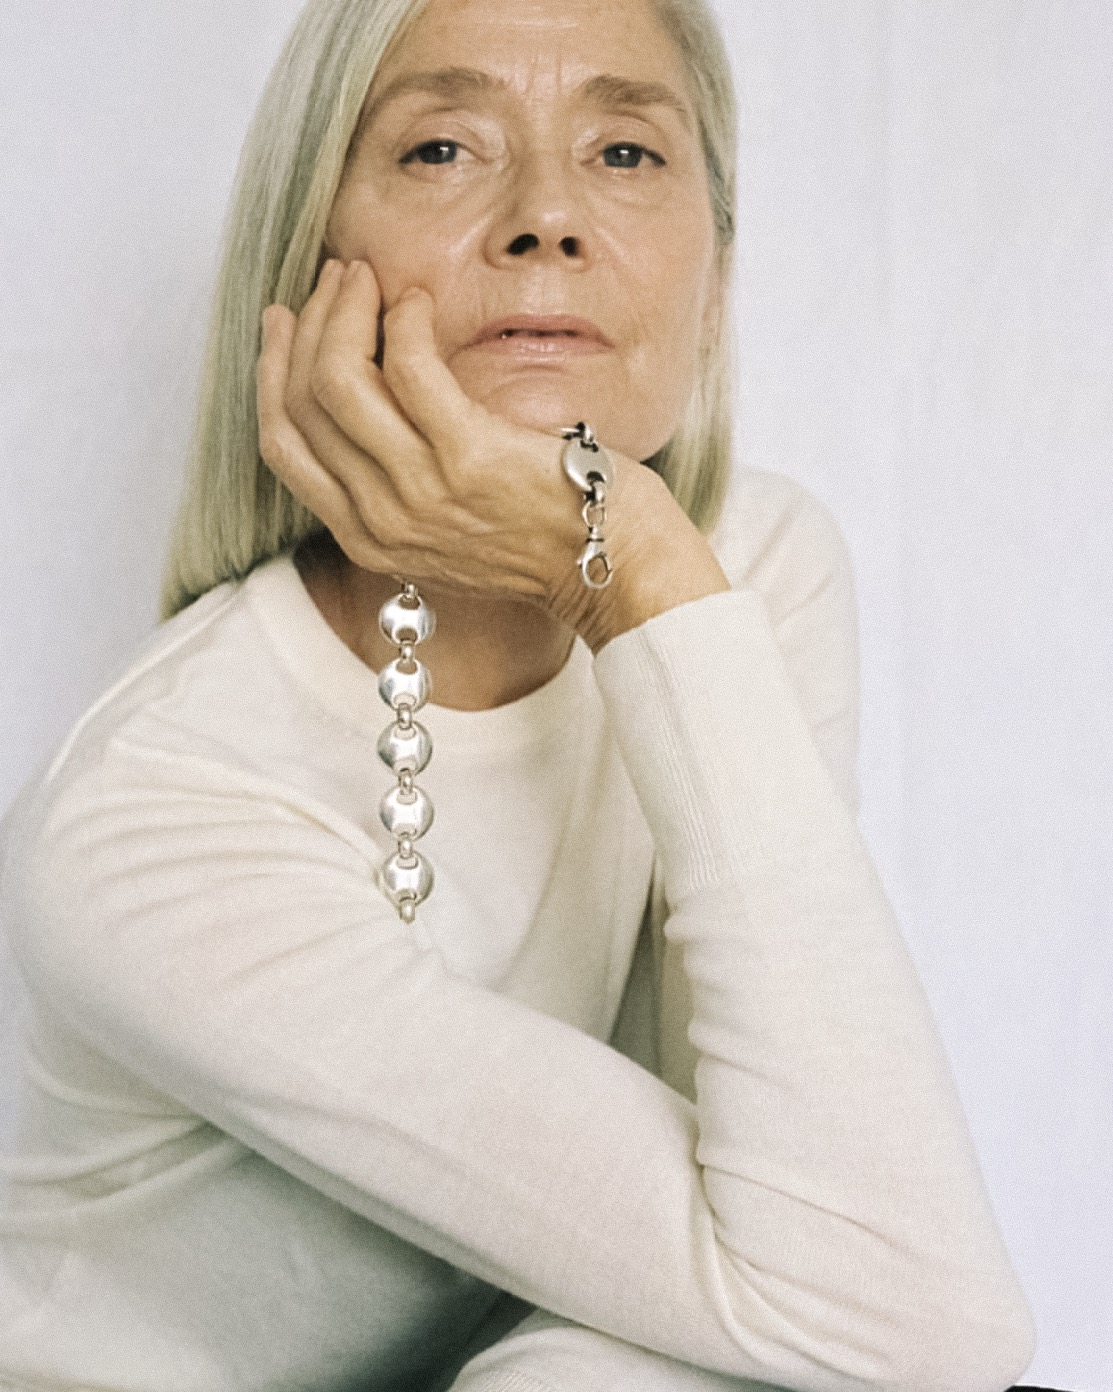 SOPHIE BUHAI 'SS19 ON AXELLE' |  It's wonderful to see jewellery designer Sophie Buhai continue to bring her signature brand of chic to a more inclusive audience. Perhaps the most beautiful campaign shot to date | image via Sophie Buhai, photo Marie Dehe    LINK HERE >>